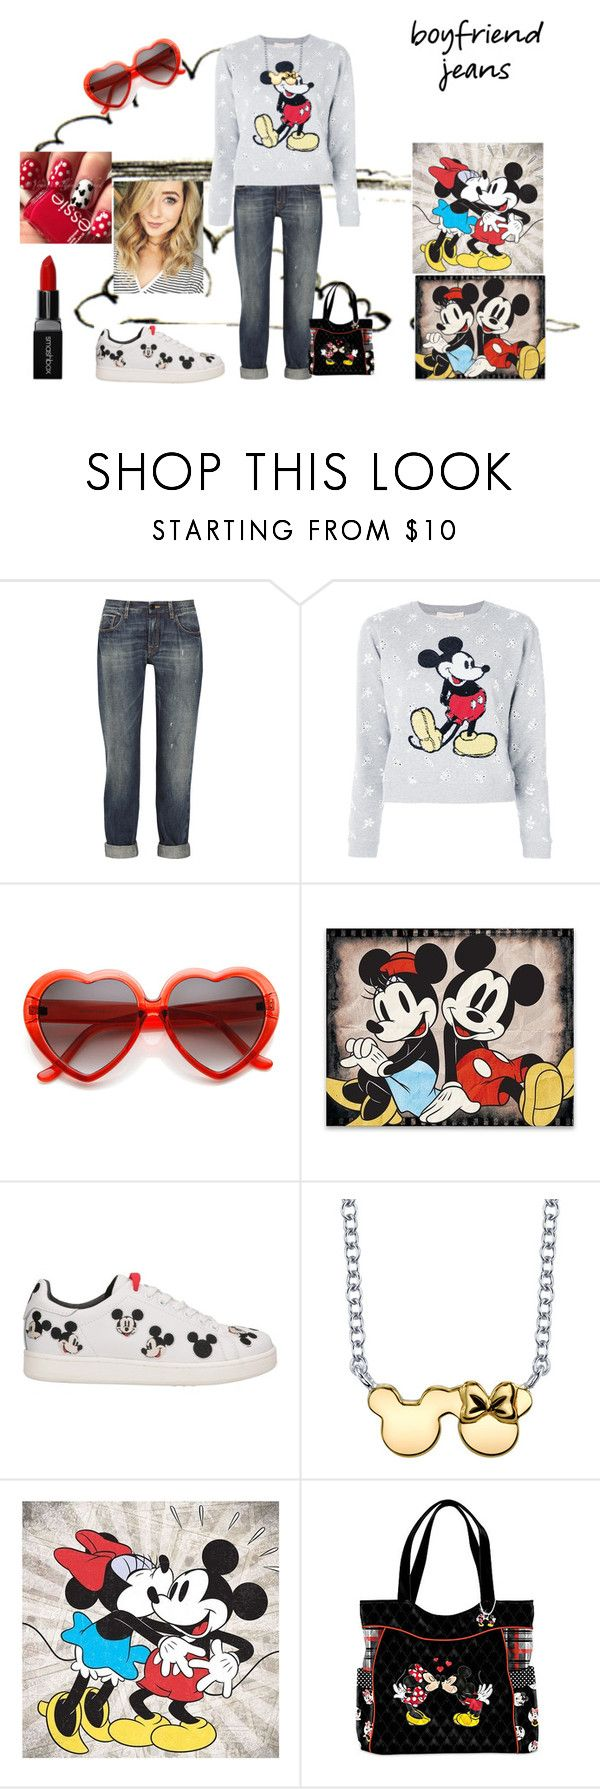 """""""Boyfriend Jeans"""" by emily-dickson-1 ❤ liked on Polyvore featuring dVb Victoria Beckham, Marc Jacobs, MOA Master of Arts, Disney, Artissimo, The Bradford Exchange, Smashbox, mickeymouse and minniemouse"""